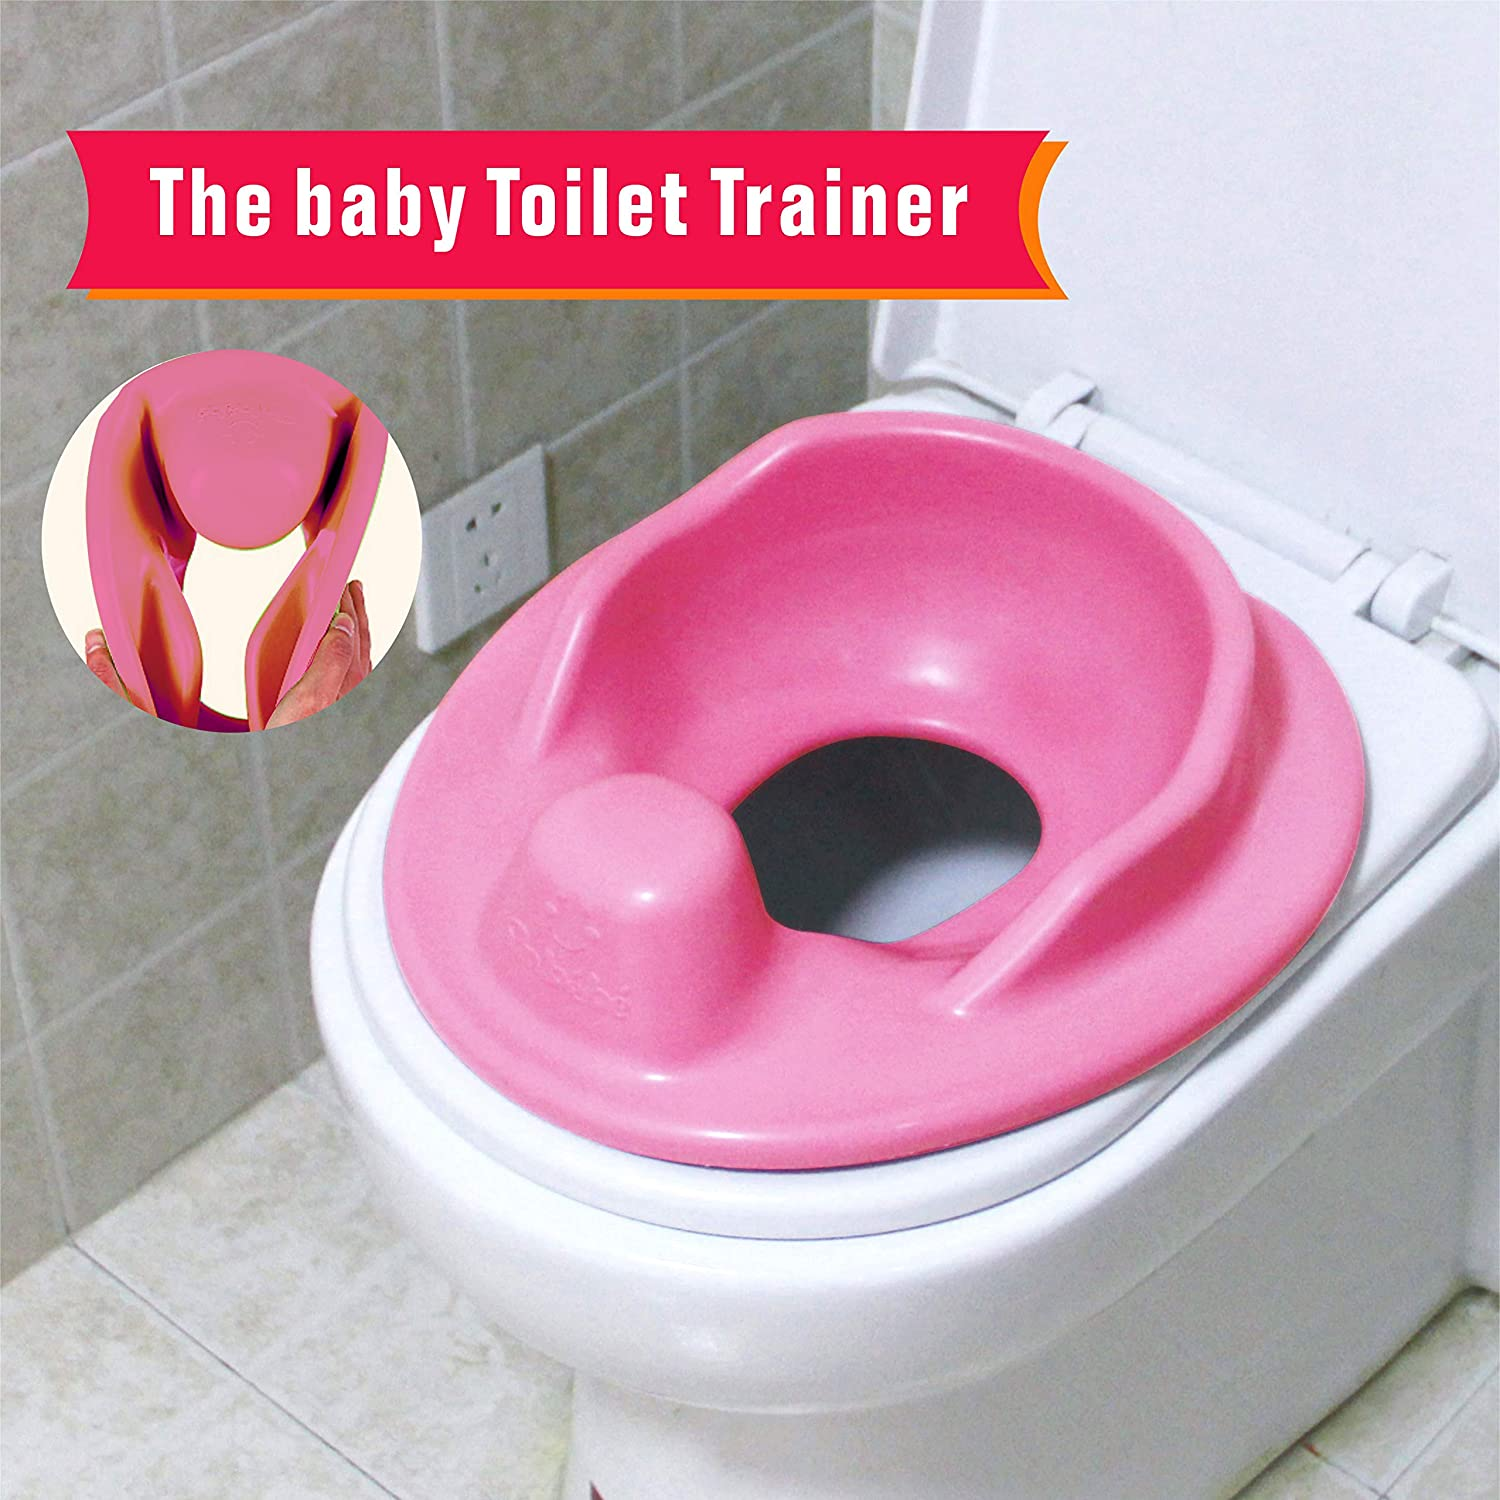 Toilet Trainer Potty Training Seat for Training Child | Potty Training Boys for Toddler Potty Ring | Fits Round and Oval Toilets | Free Folding Toilet Training Chart -Blue (Blue) Joren UAN-TT-Blue